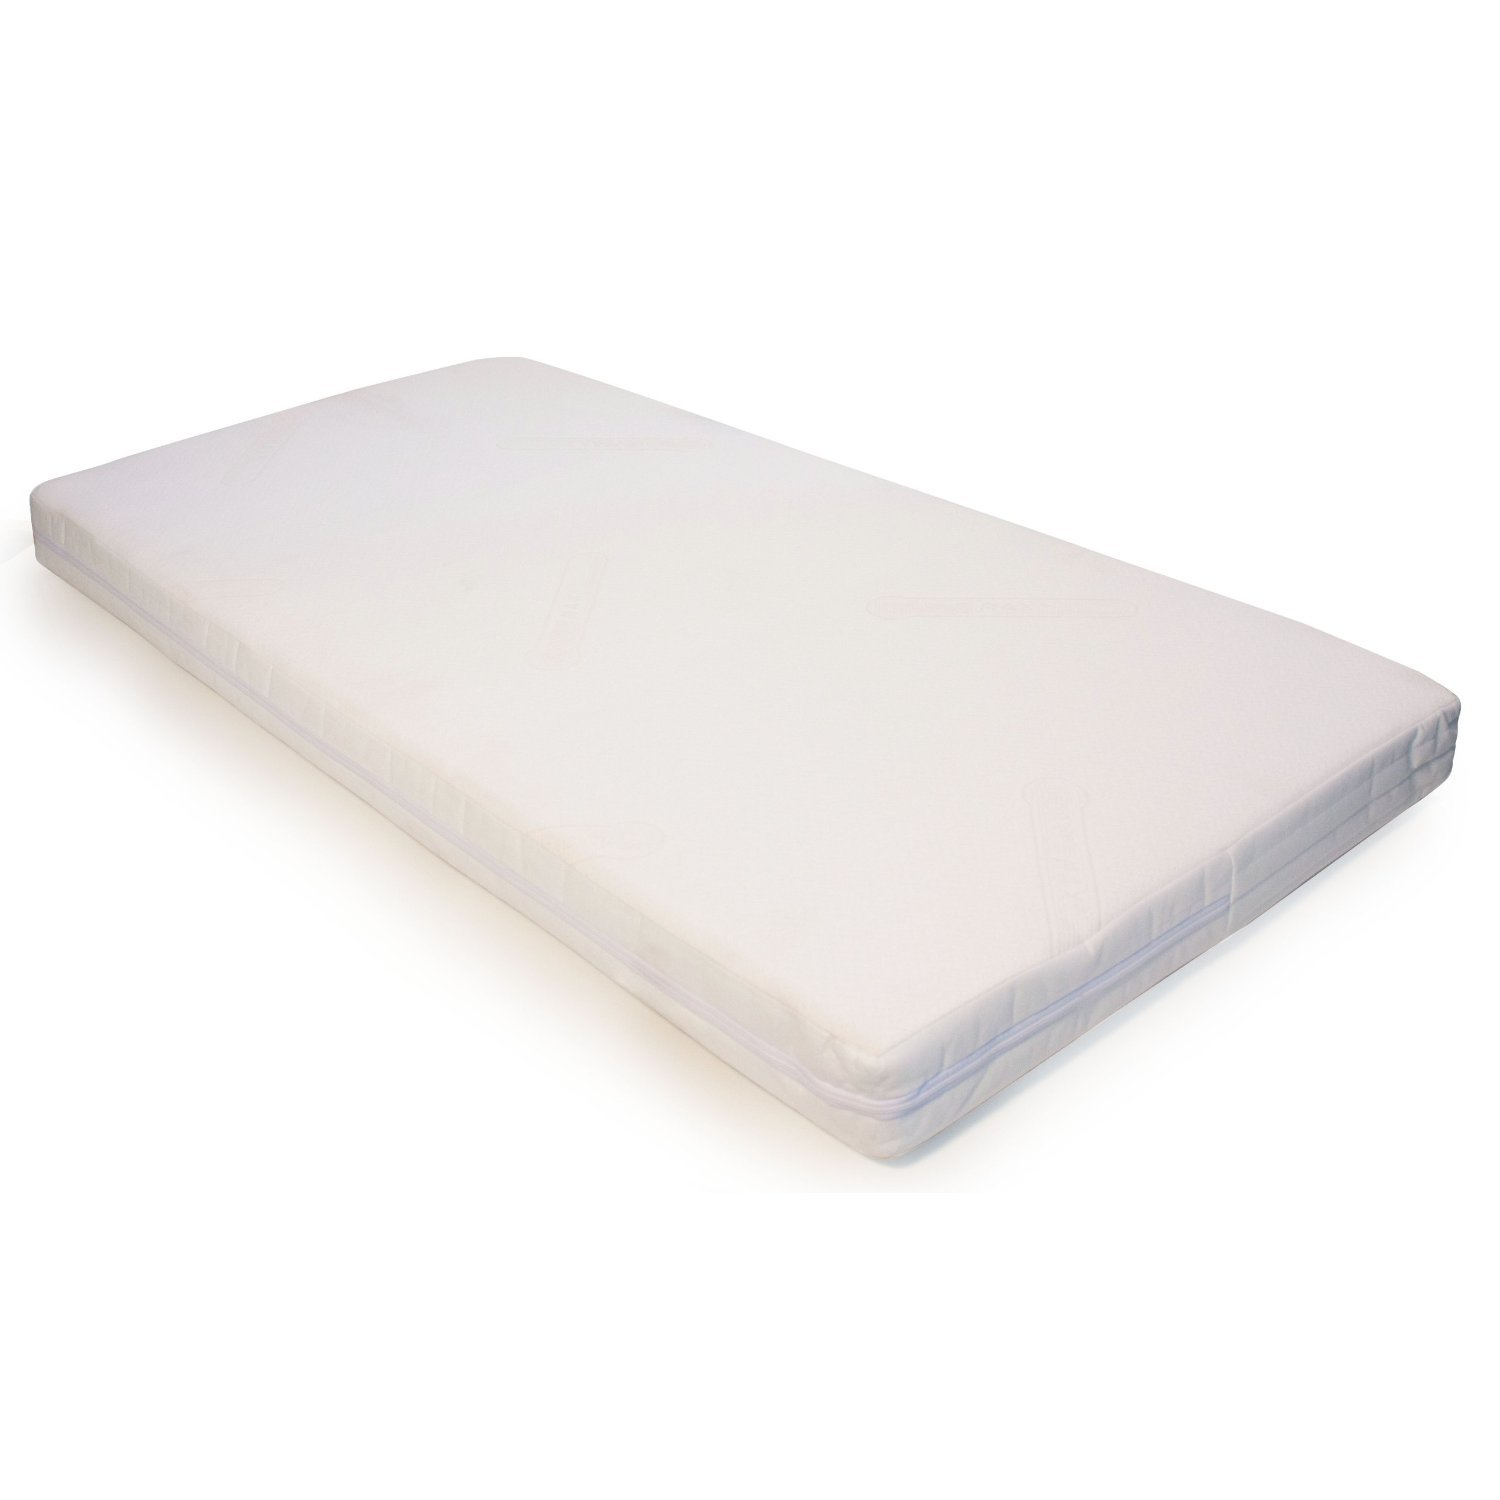 Cosatto Coolio Cot Bed Mattress - 140 x 70 x 10 cm CT2492